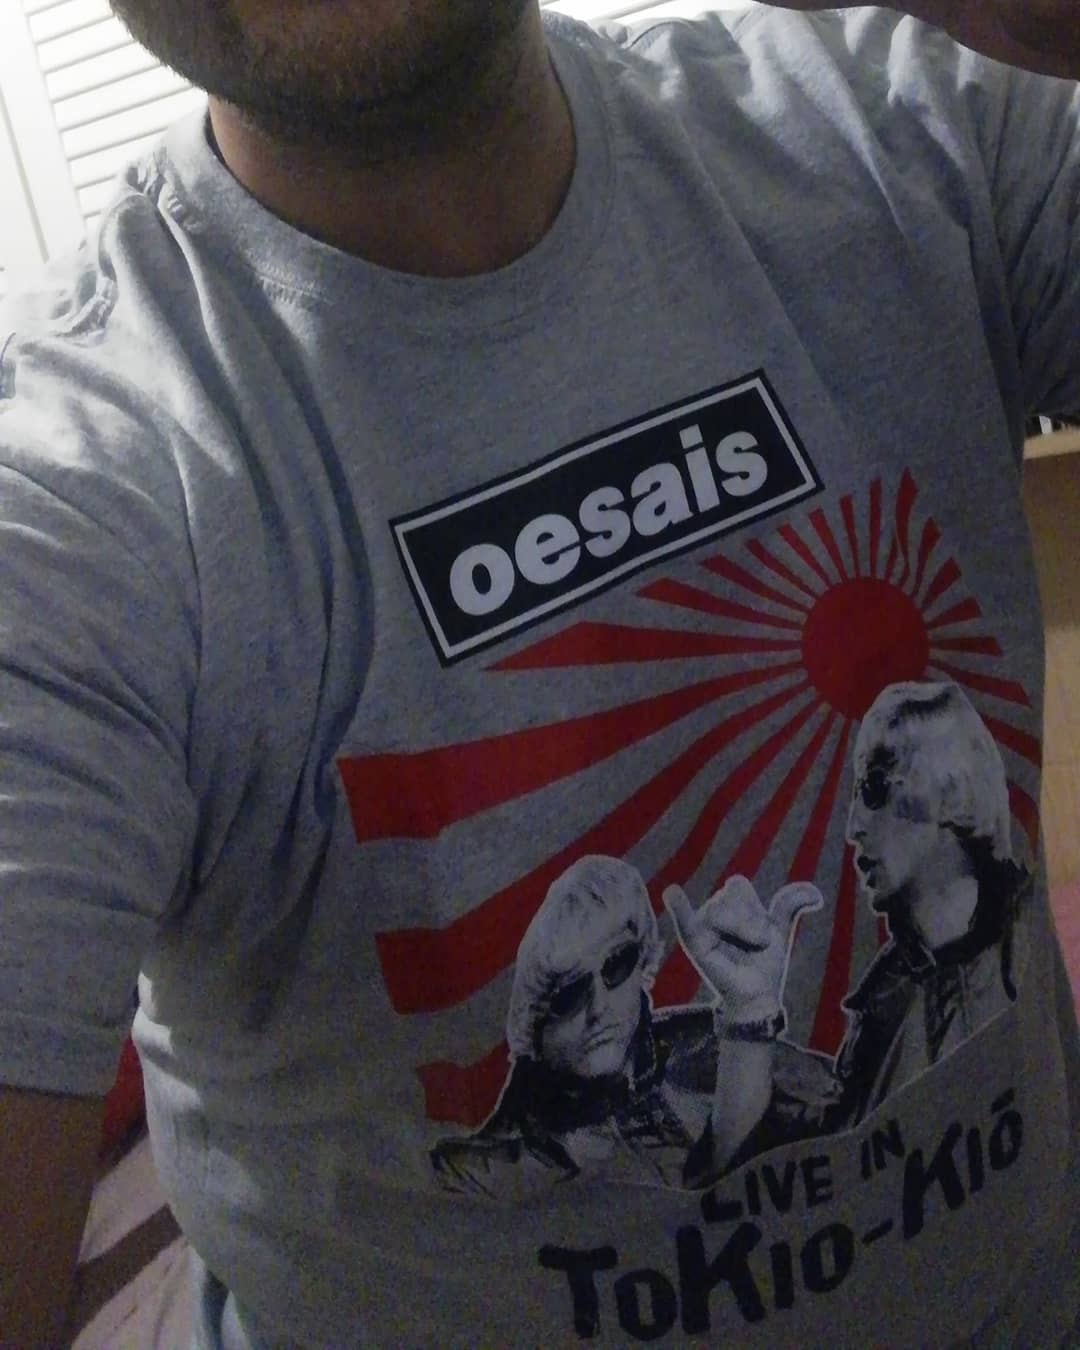 Oesais Live In Tokio-Kio Shirts photo review